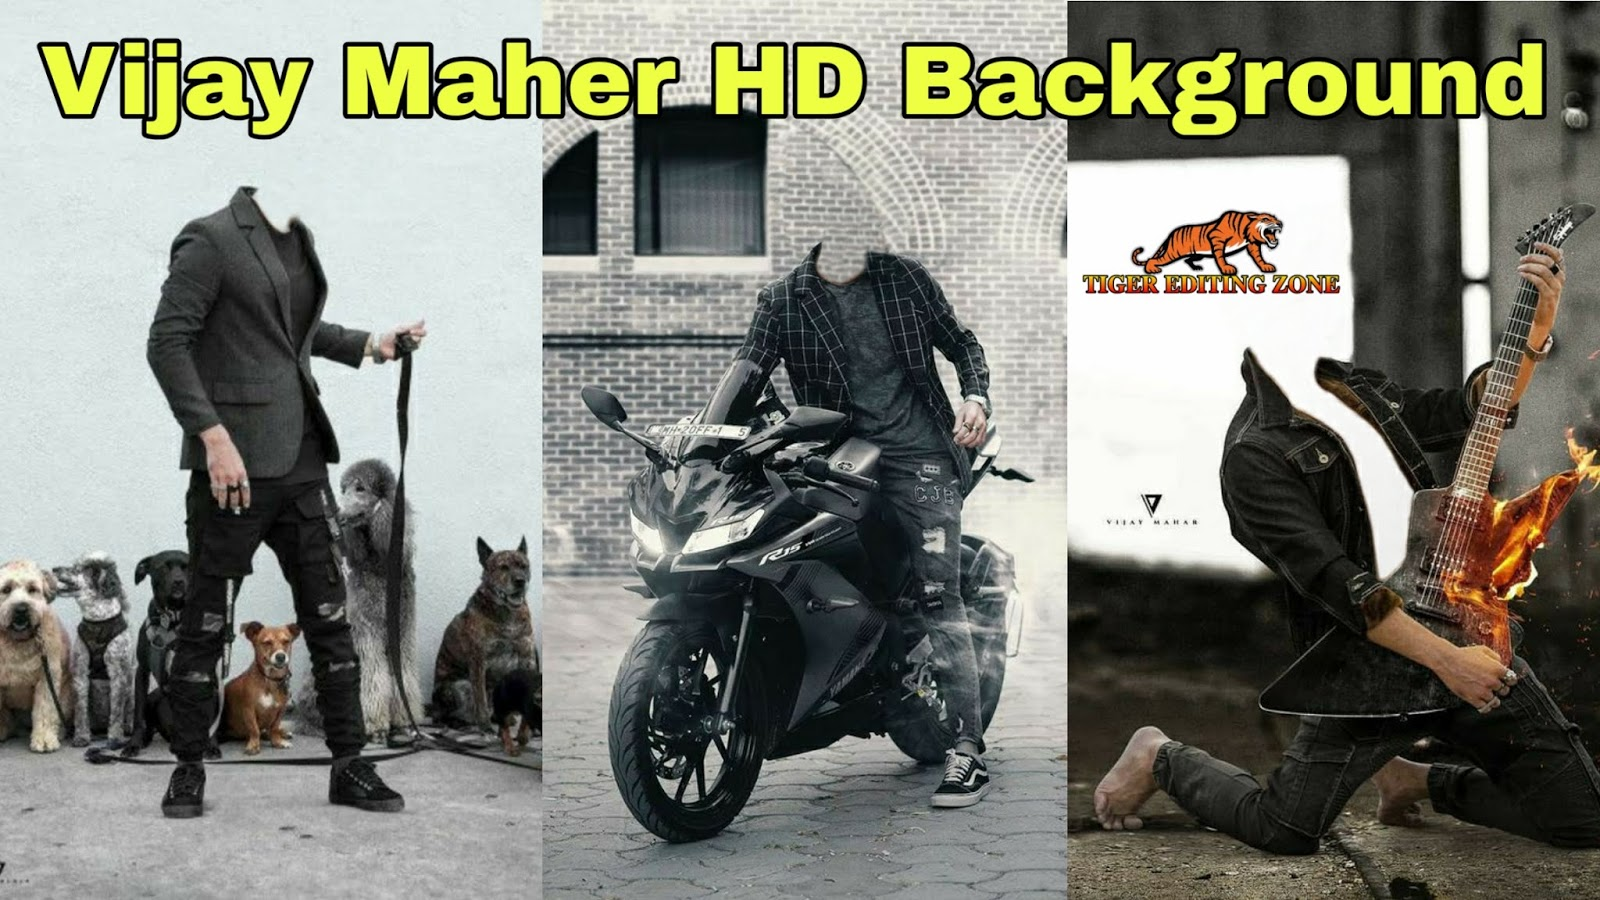 Vijay Mahar HD Background free download 2020 | Vijay Maher Background for Editing